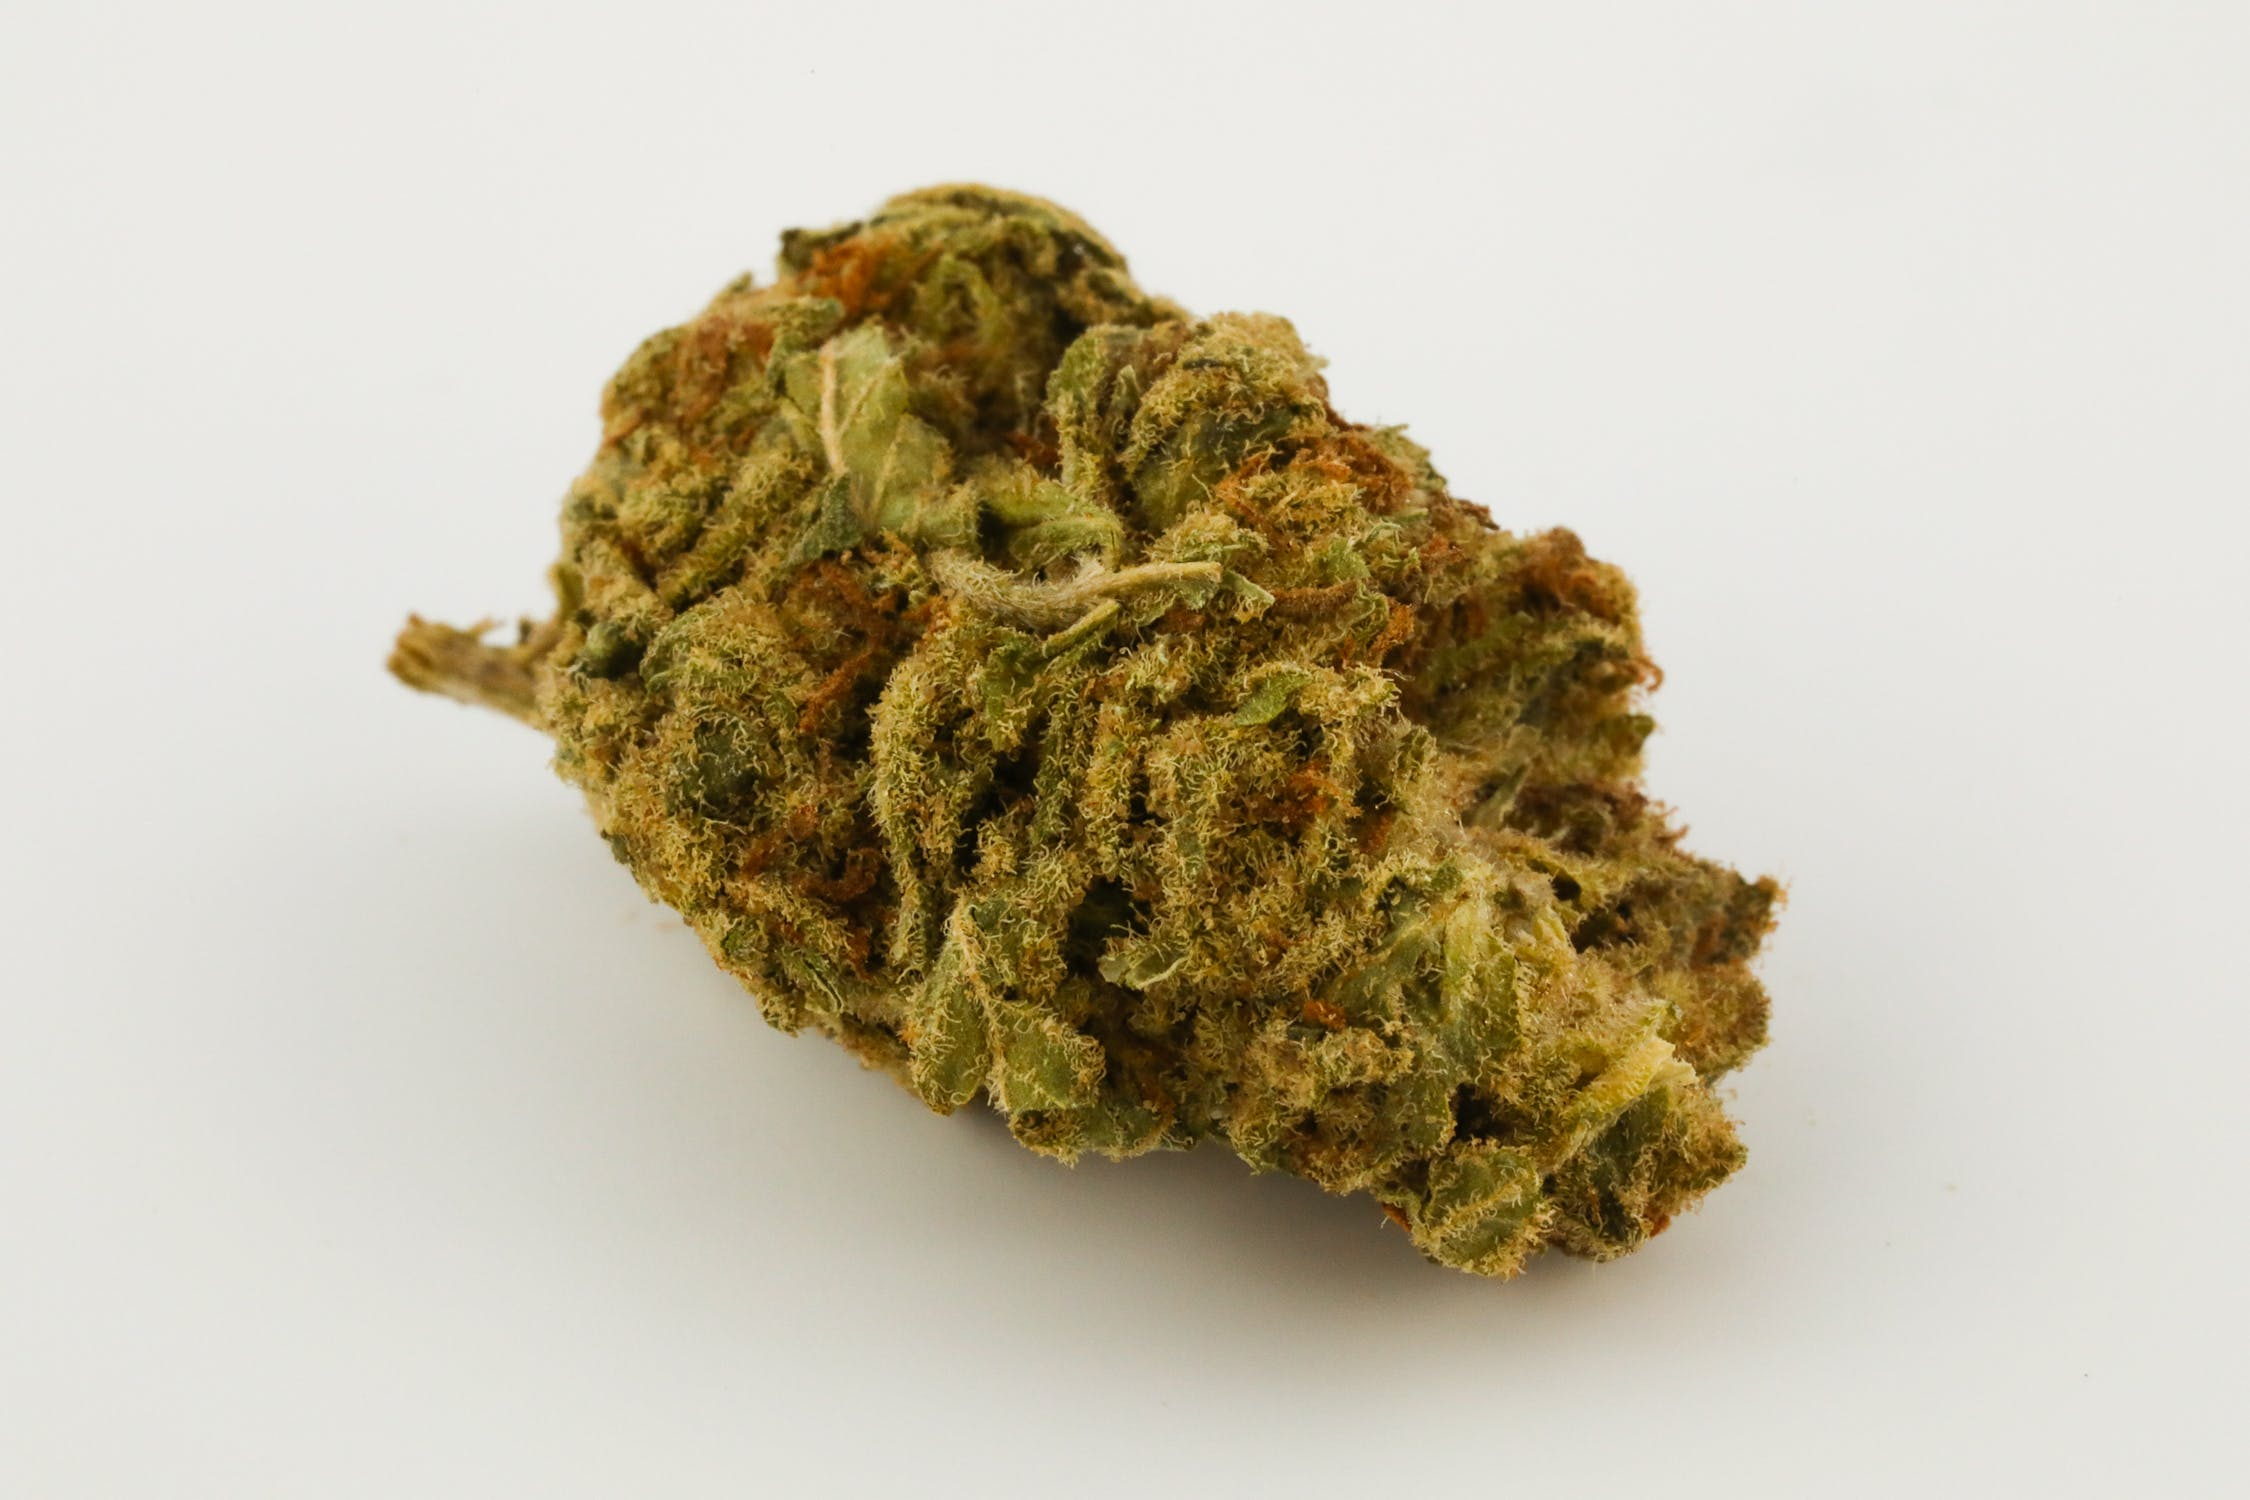 Sour Grape Weed; Sour Grape Cannabis Strain; Sour Grape Hybrid Marijuana Strain